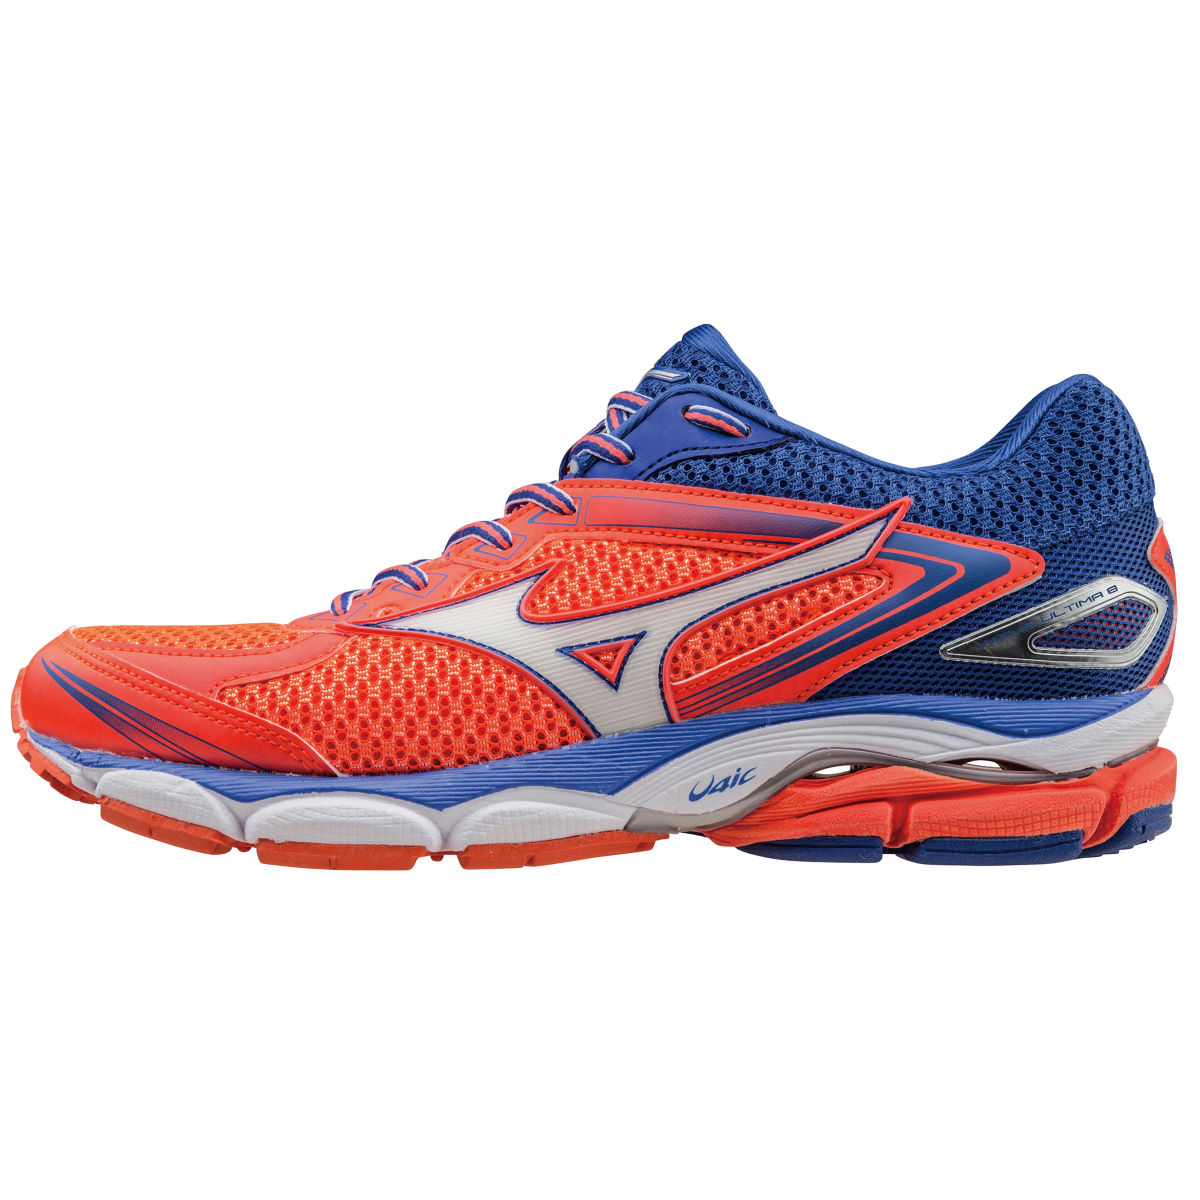 Chaussures Femme Mizuno Wave Ultima 8 (AH16) - 4 UK Coral/White/Blue Chaussures de running amorties